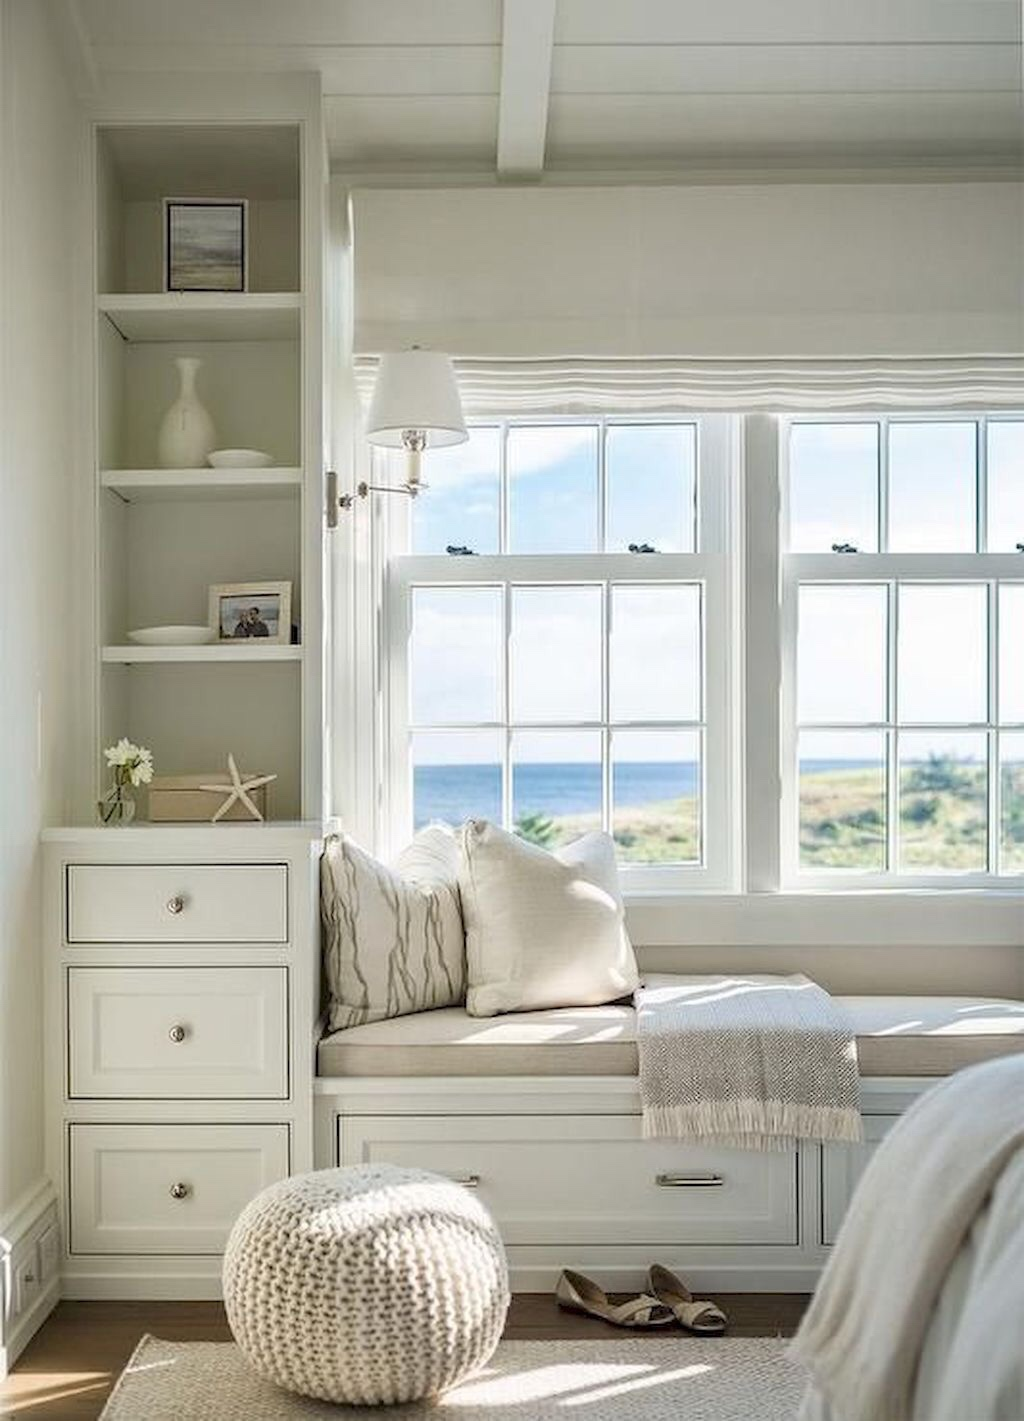 How to create a dreamy window seat